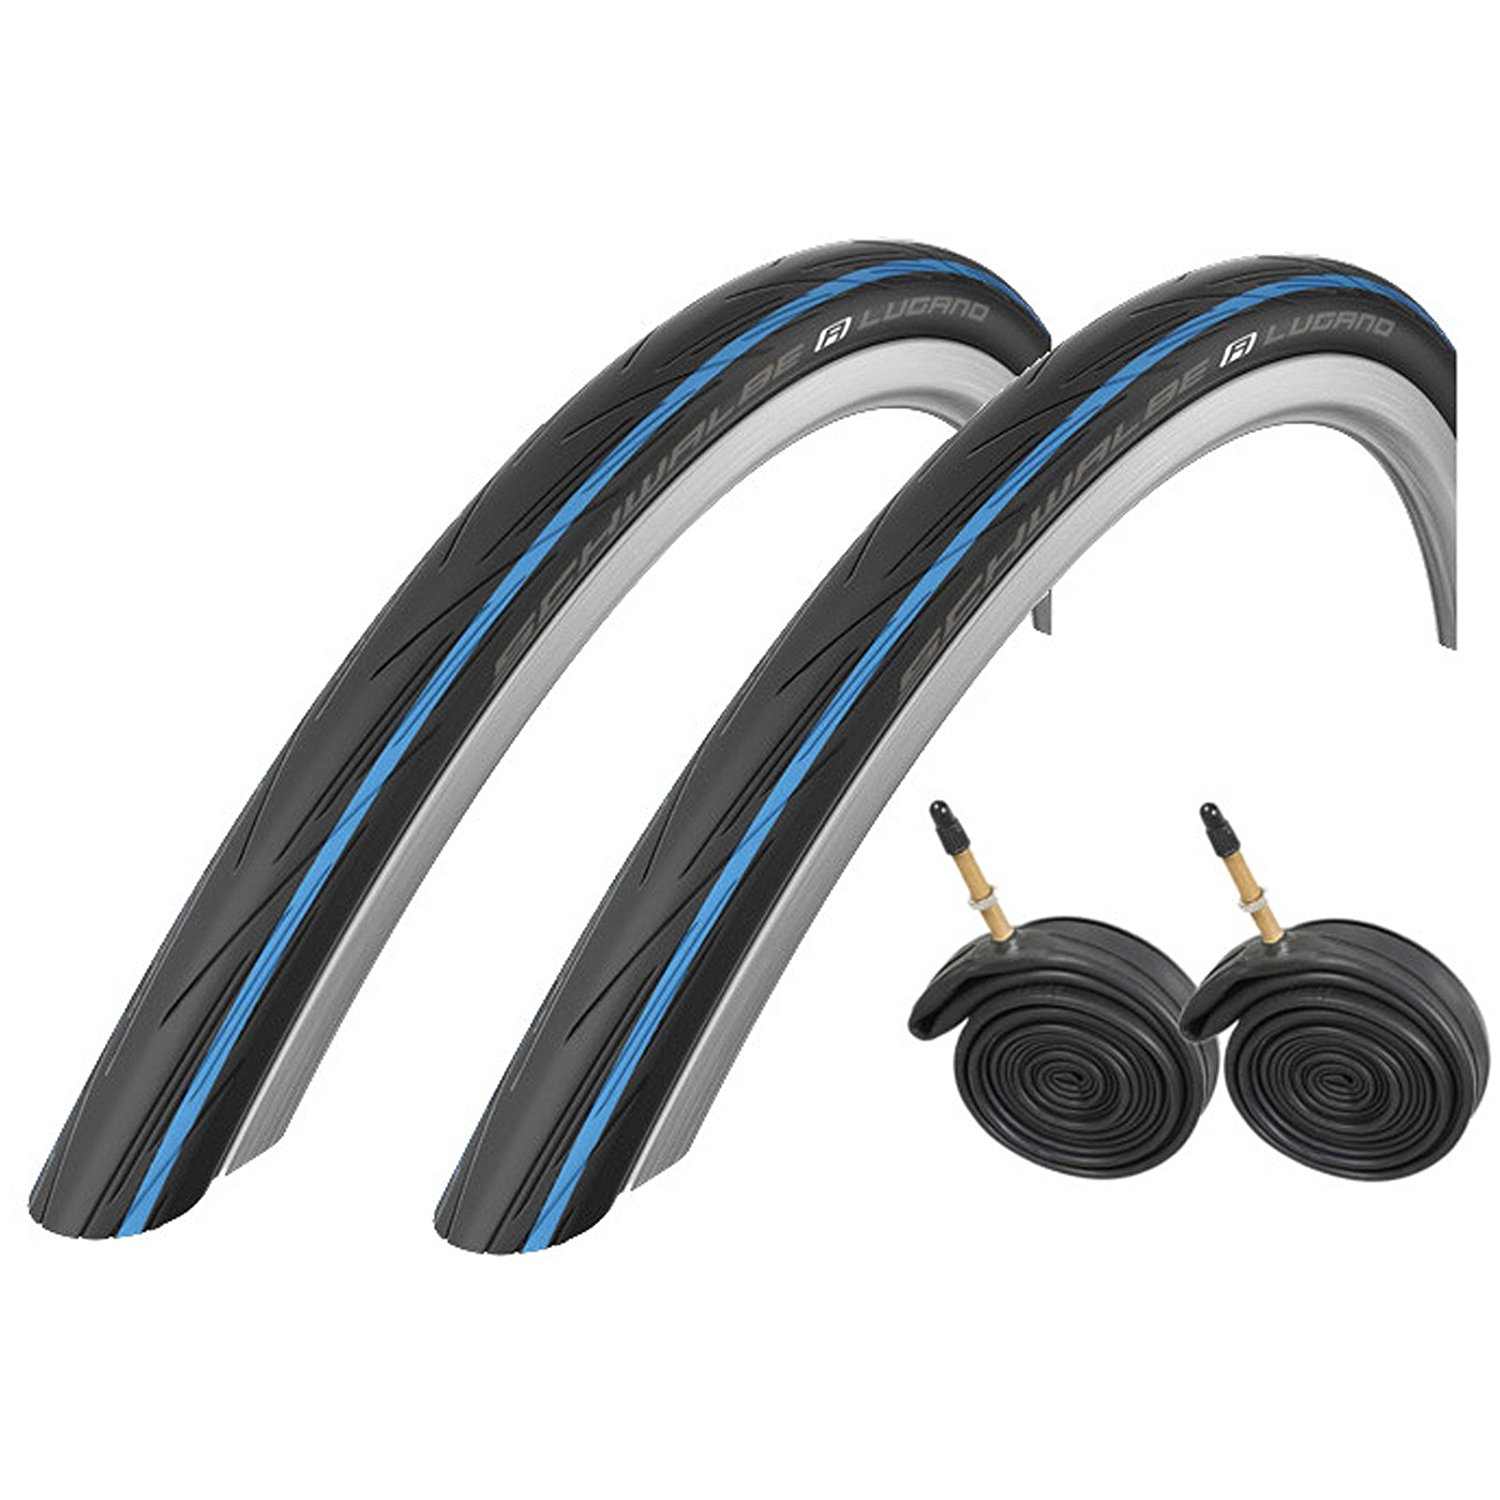 2x Schwalbe Lugano 700c x 25 Road Racing Bike Tires & Presta Tubes - Blue